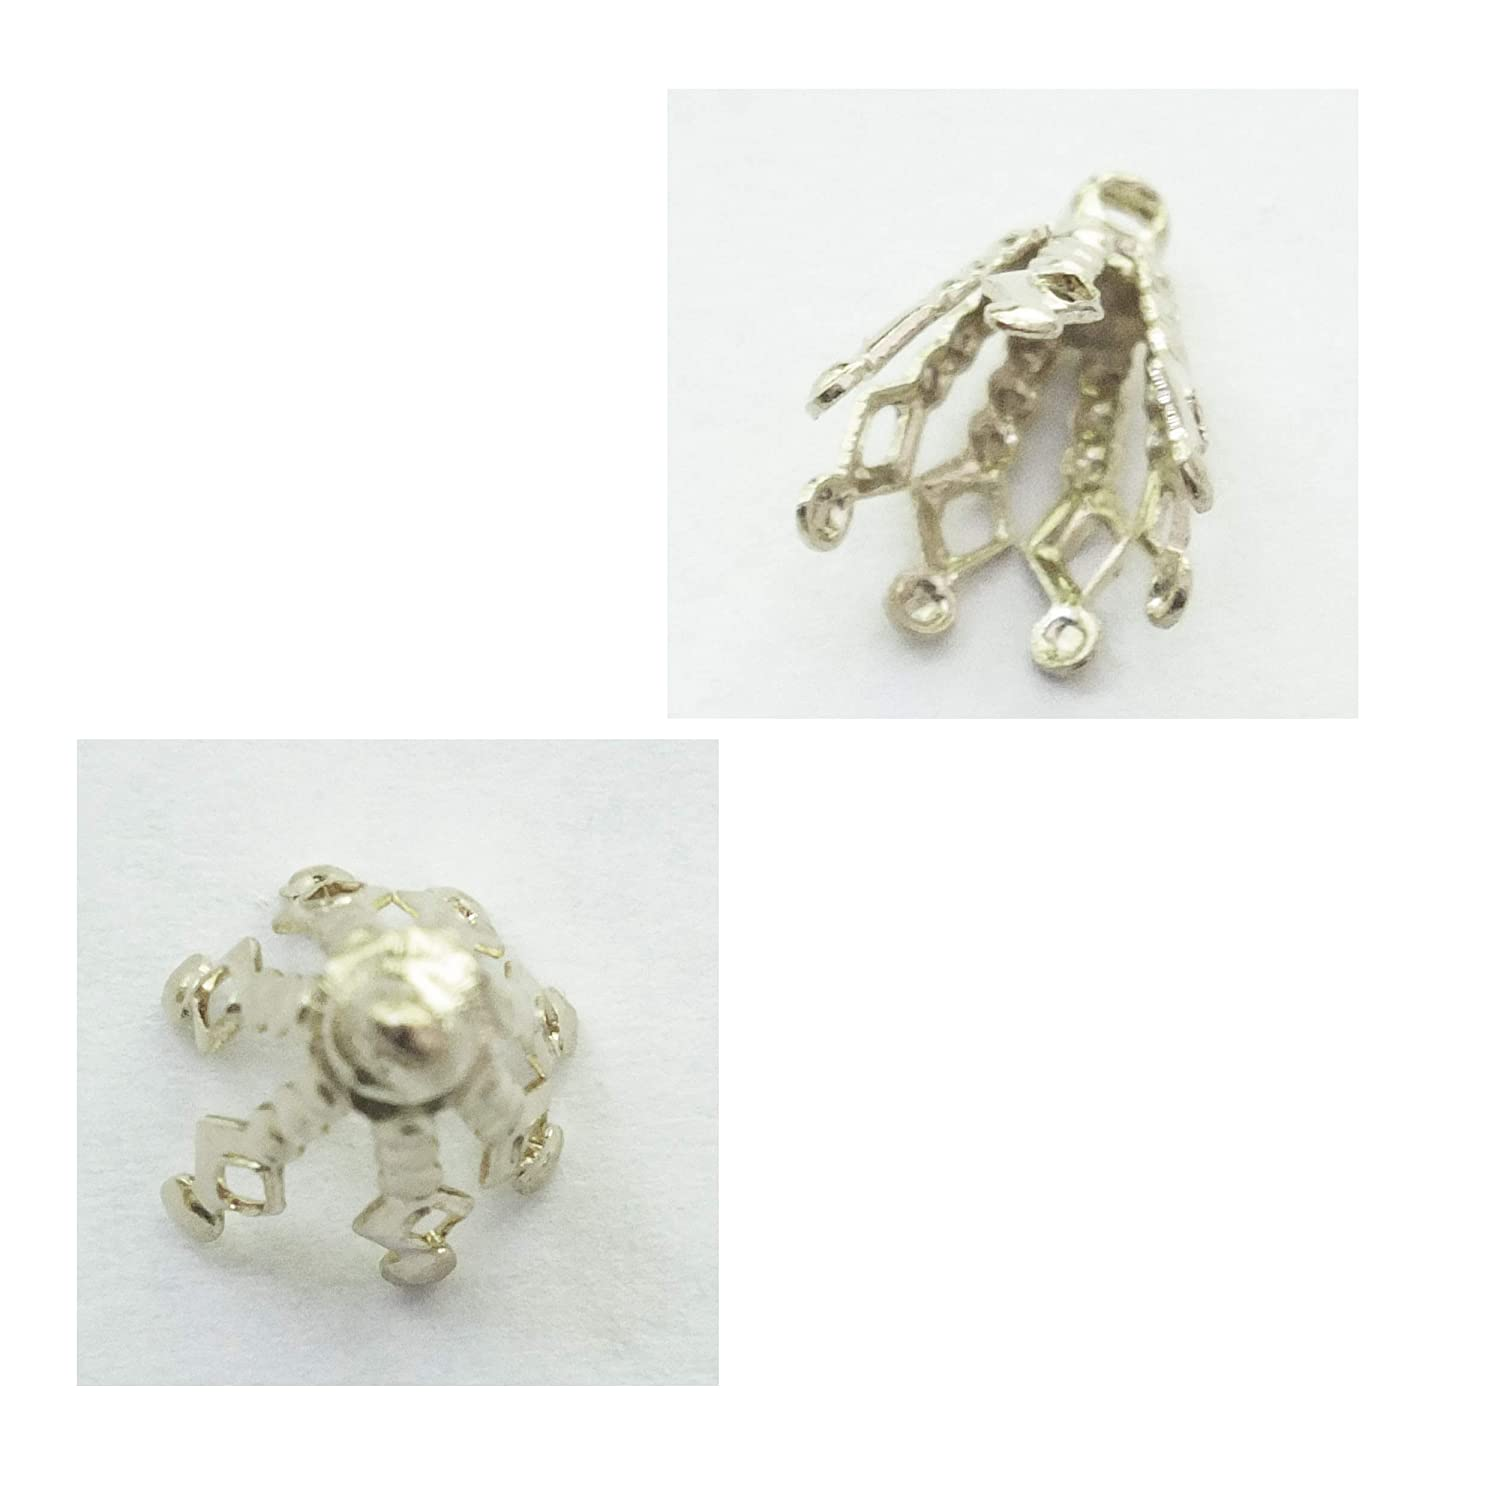 Large Filigree Bell Caps Bails Pliable Prongs Silvertone Loop for Hanging Pack of 50 Approx 14mm